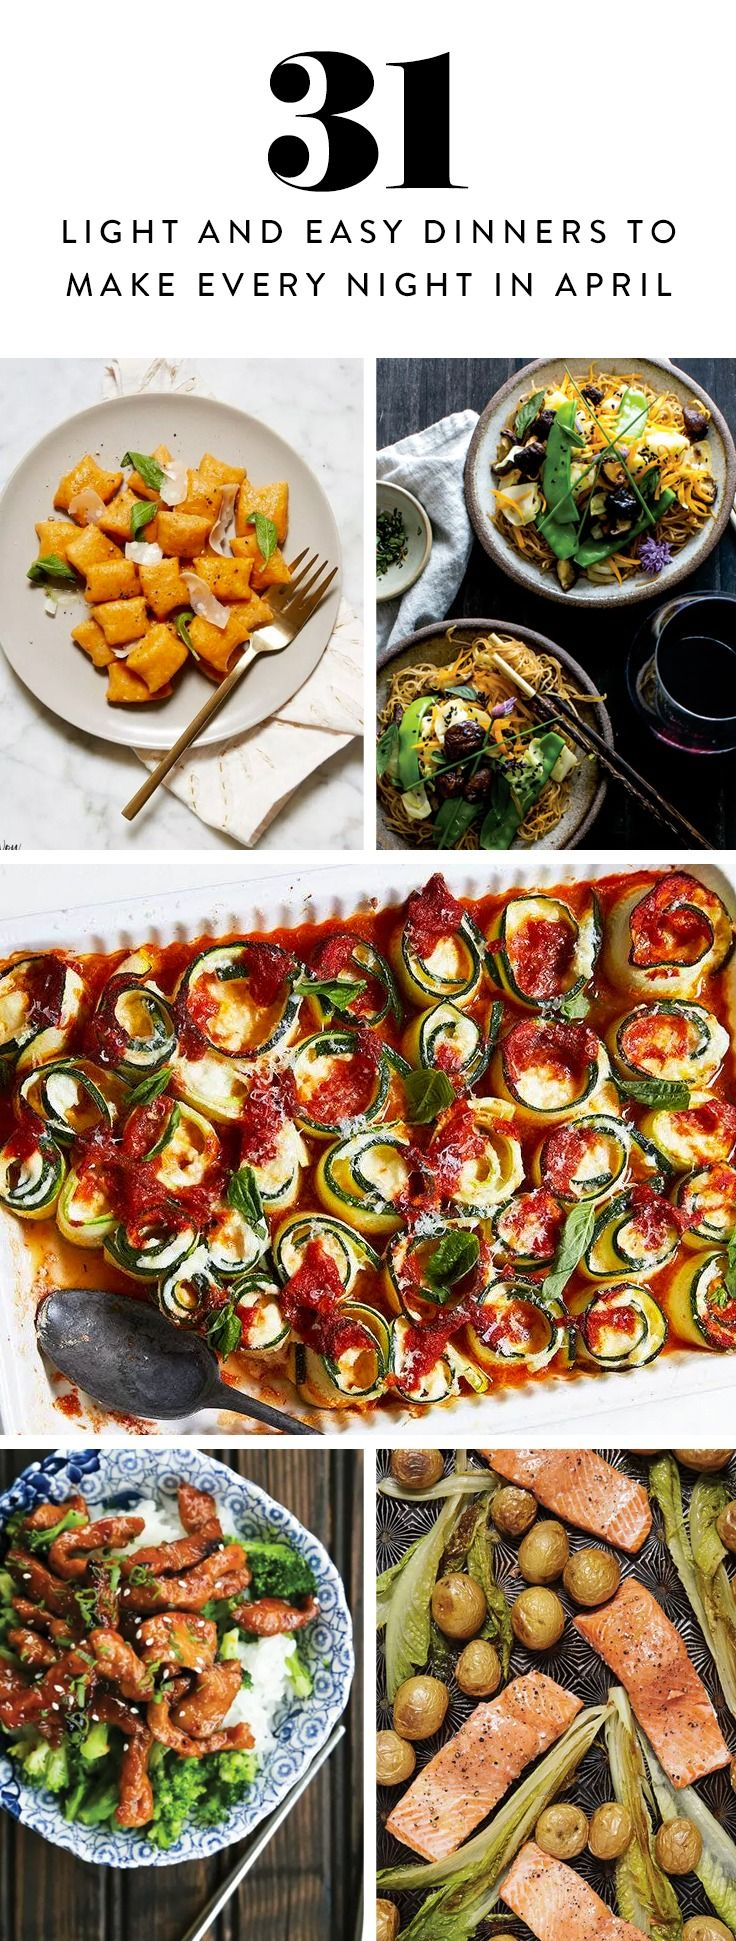 Presenting a whole month of springtime dinner inspiration. Bye, cooking rut.